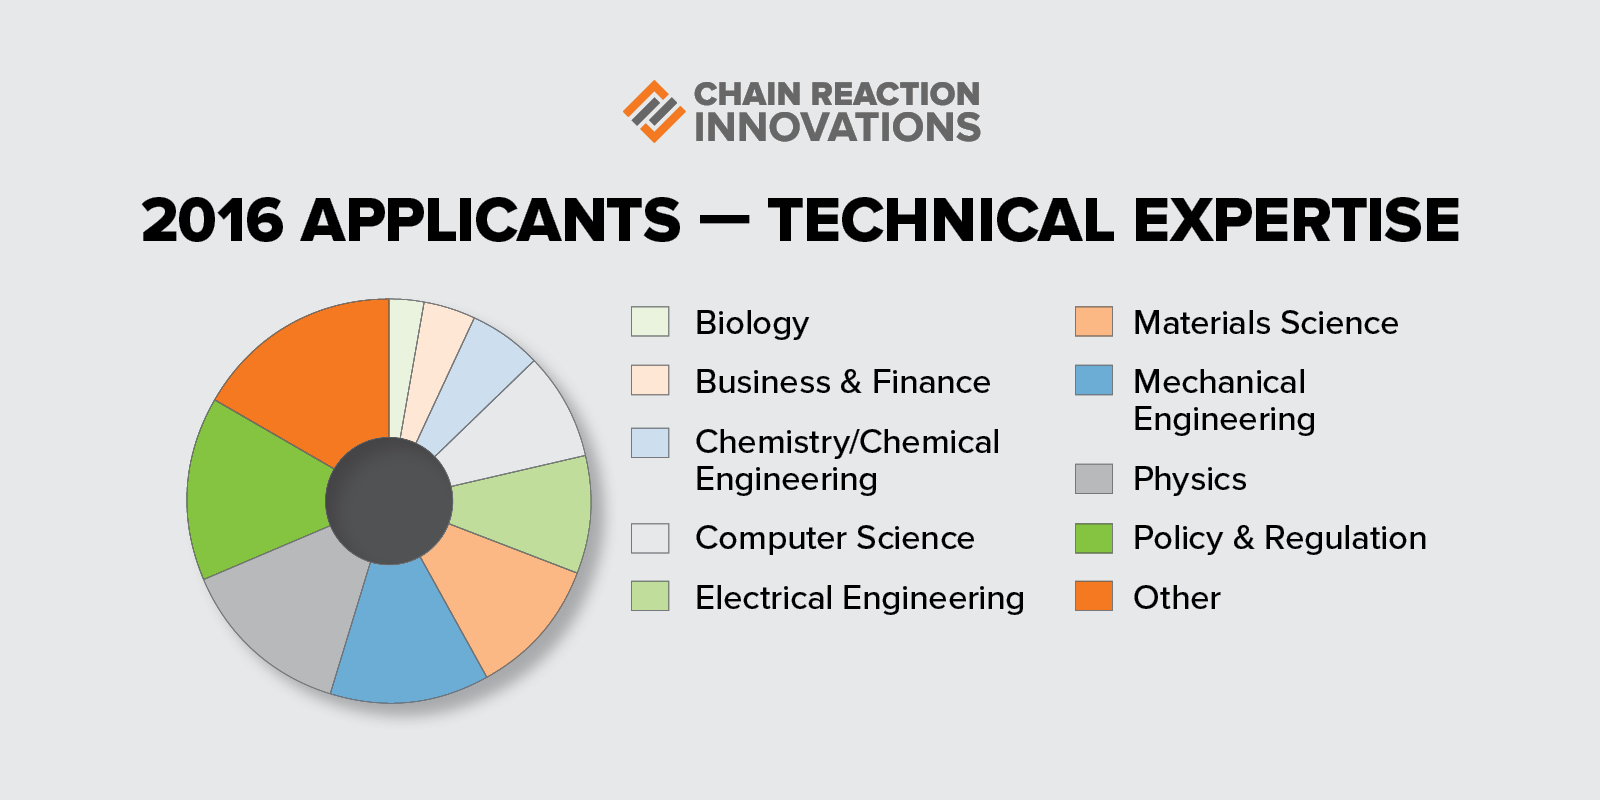 2016 Applicants - Technical Expertise